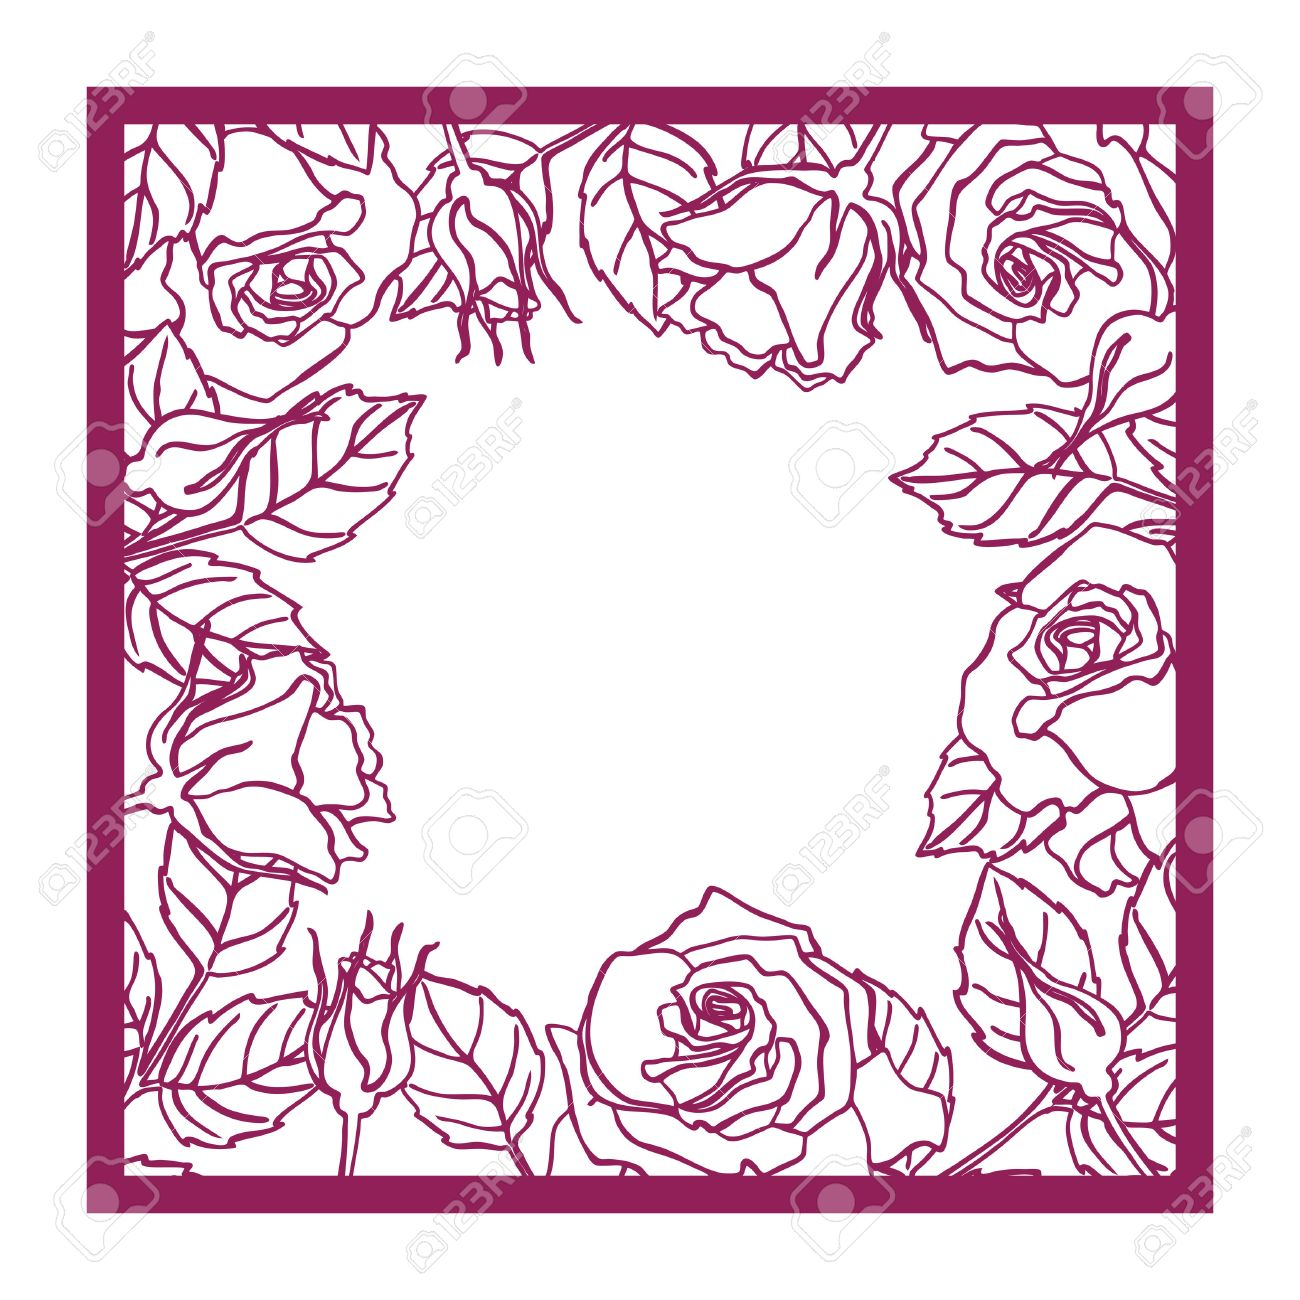 Laser cut vector rose square frame Cutout pattern silhouette with flower and leaves Die cut paper element for wedding invitations, save the date, greeting card. Square botanical cutting template panel - 63654494